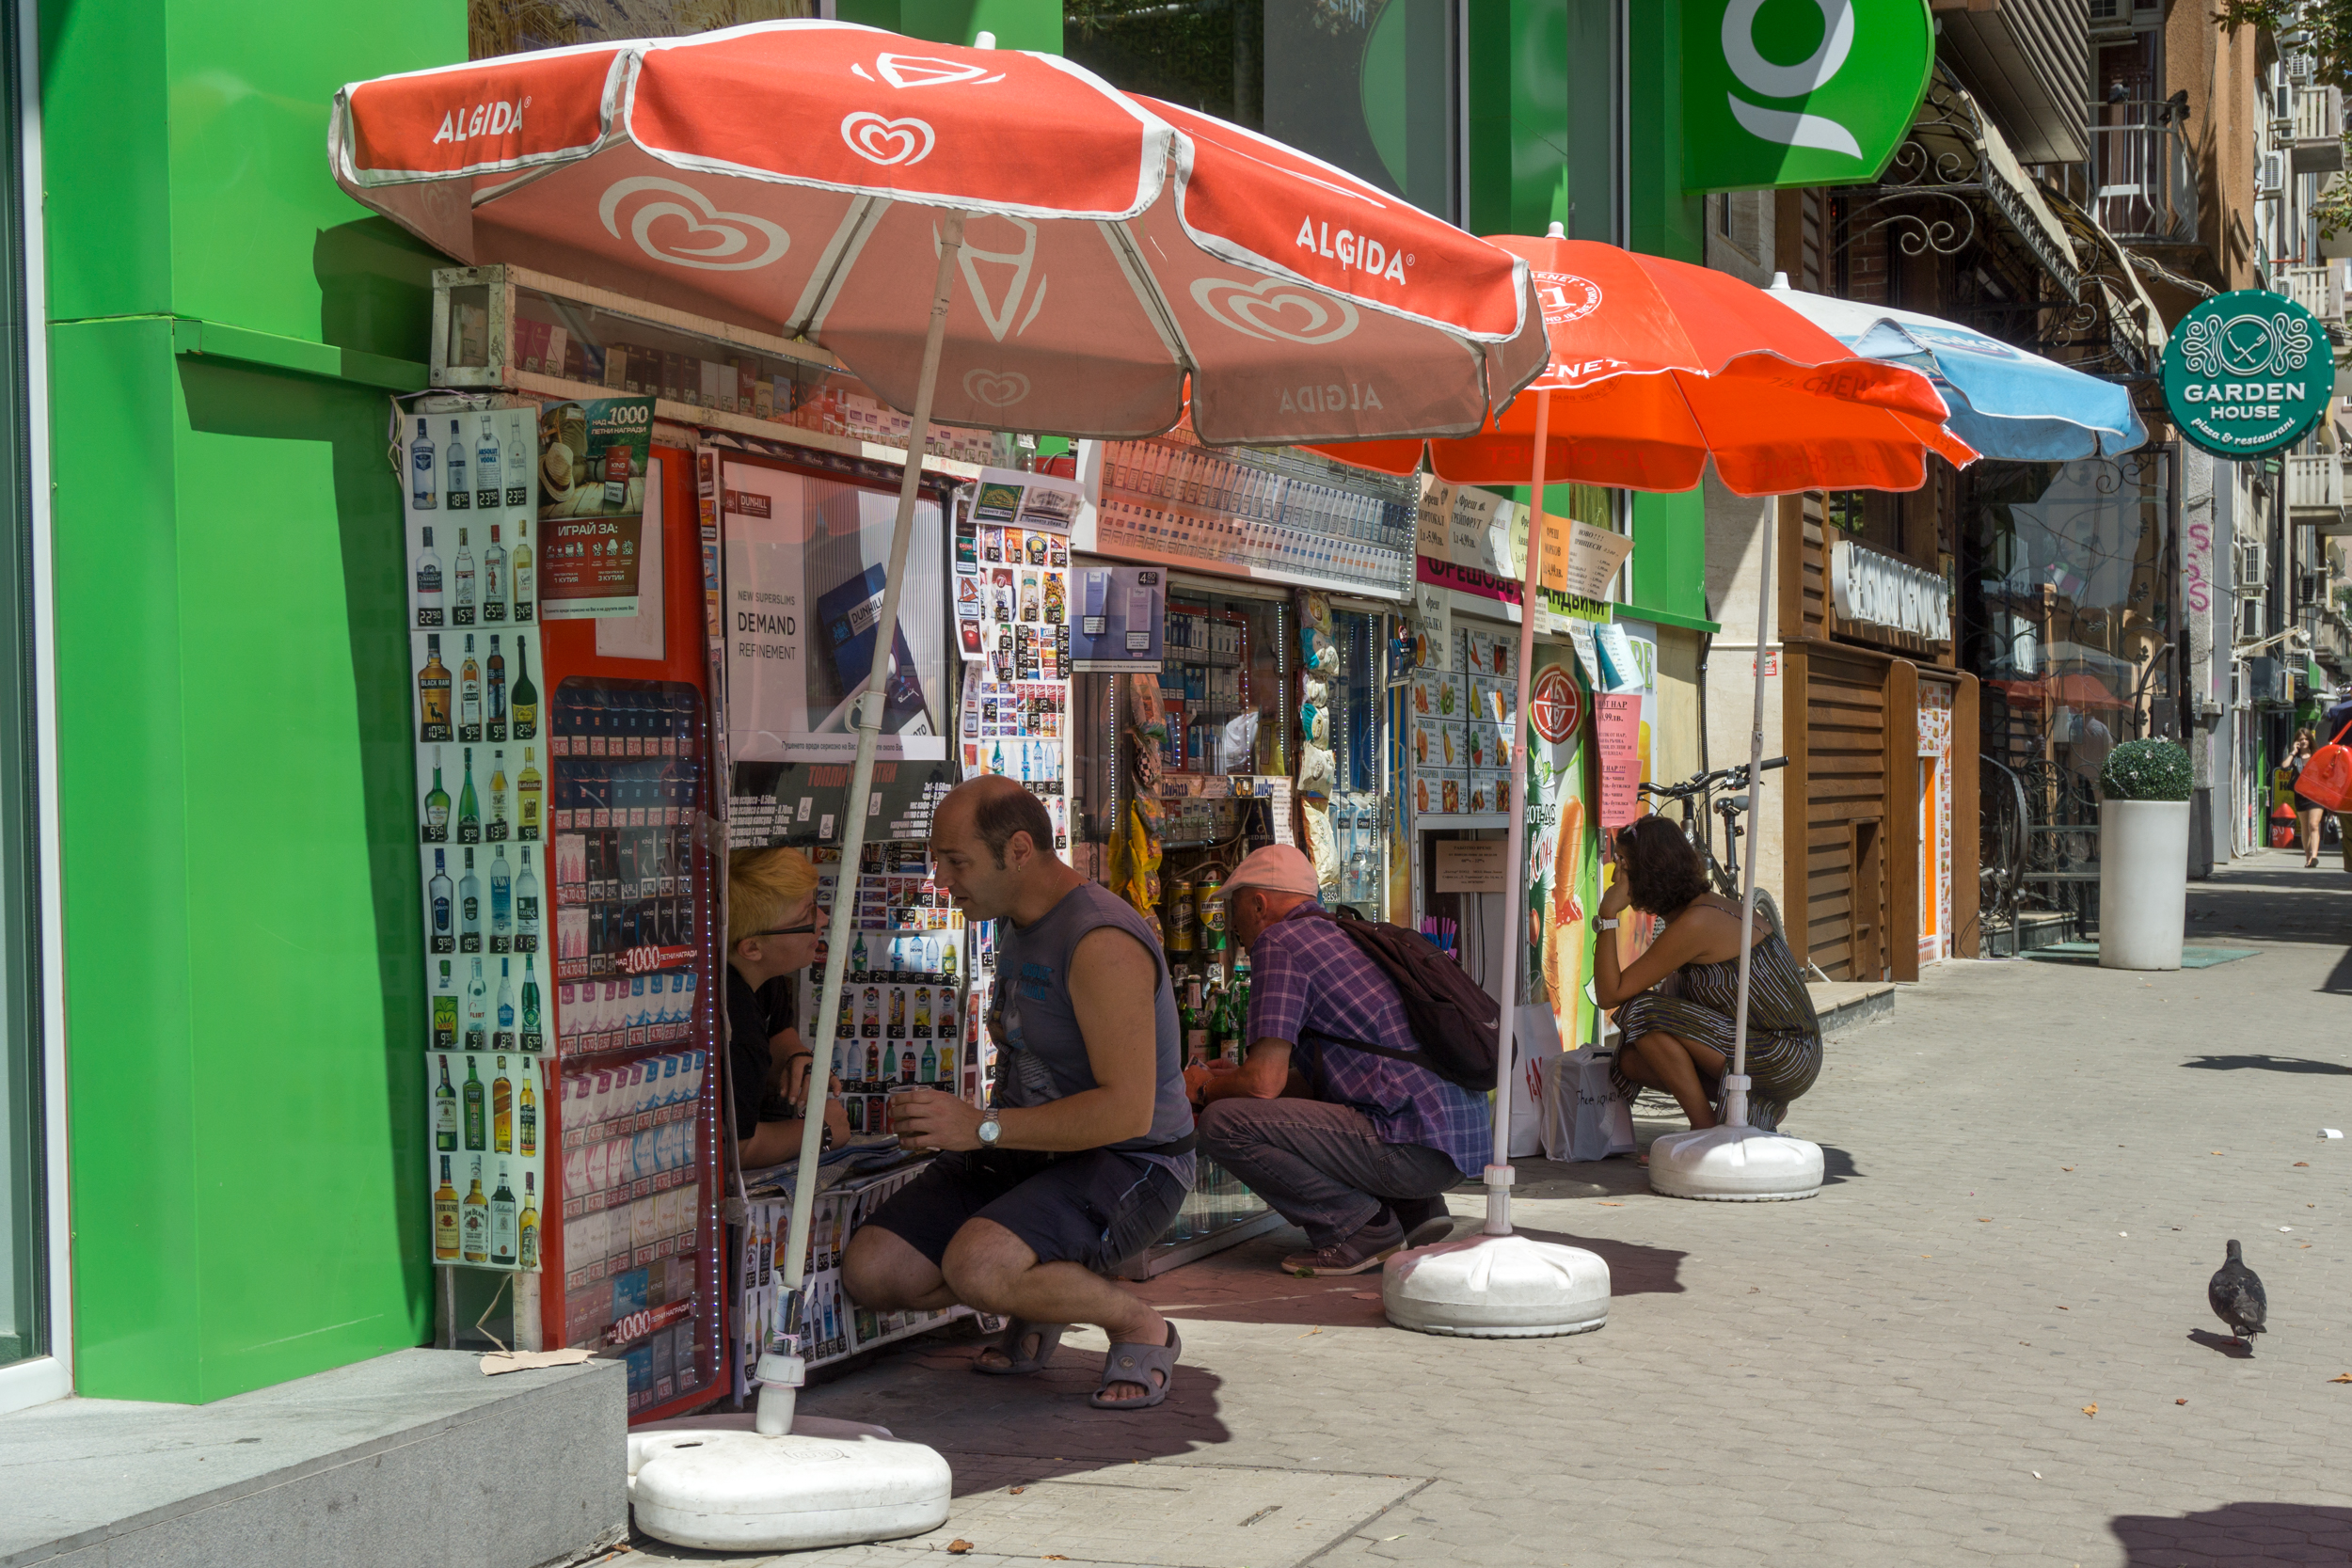 Bulgaria: You had to kneel down to buy things from these vendors in Sofia